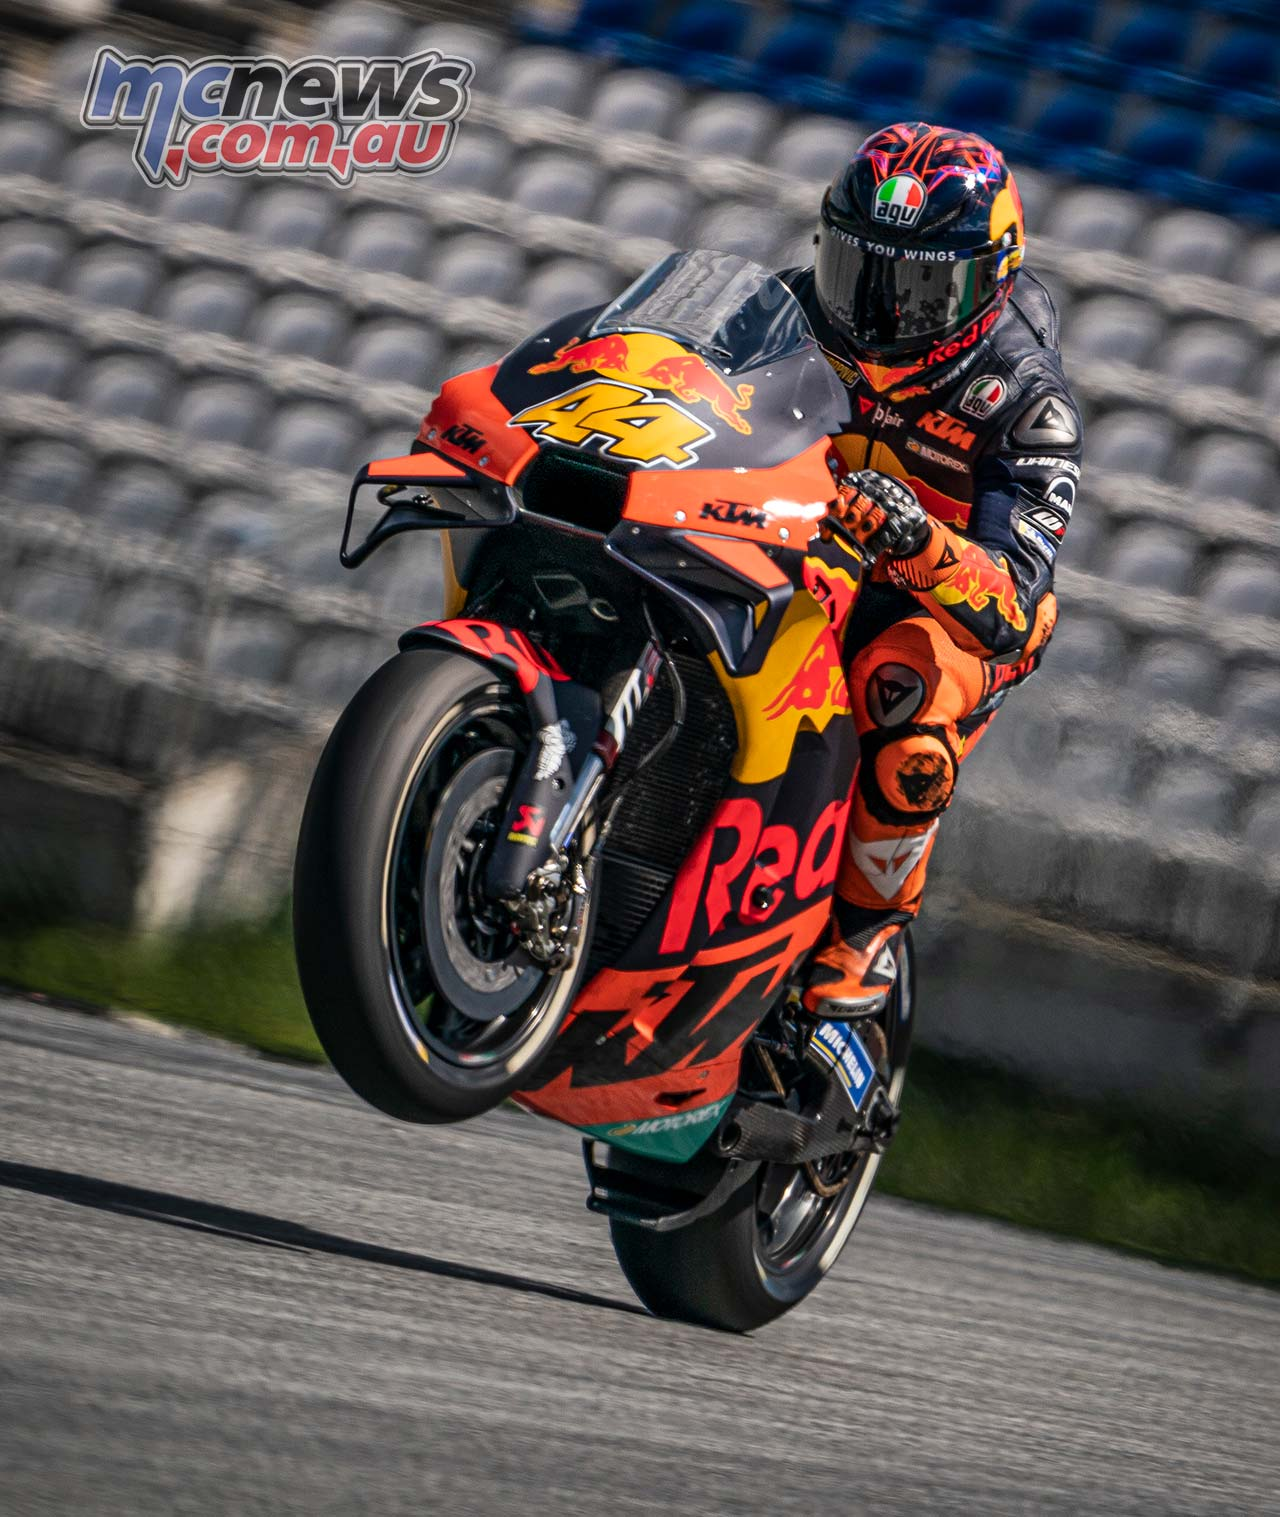 Ktm Motogp Back In Action At Red Bull Ring Motorcycle News Sport And Reviews